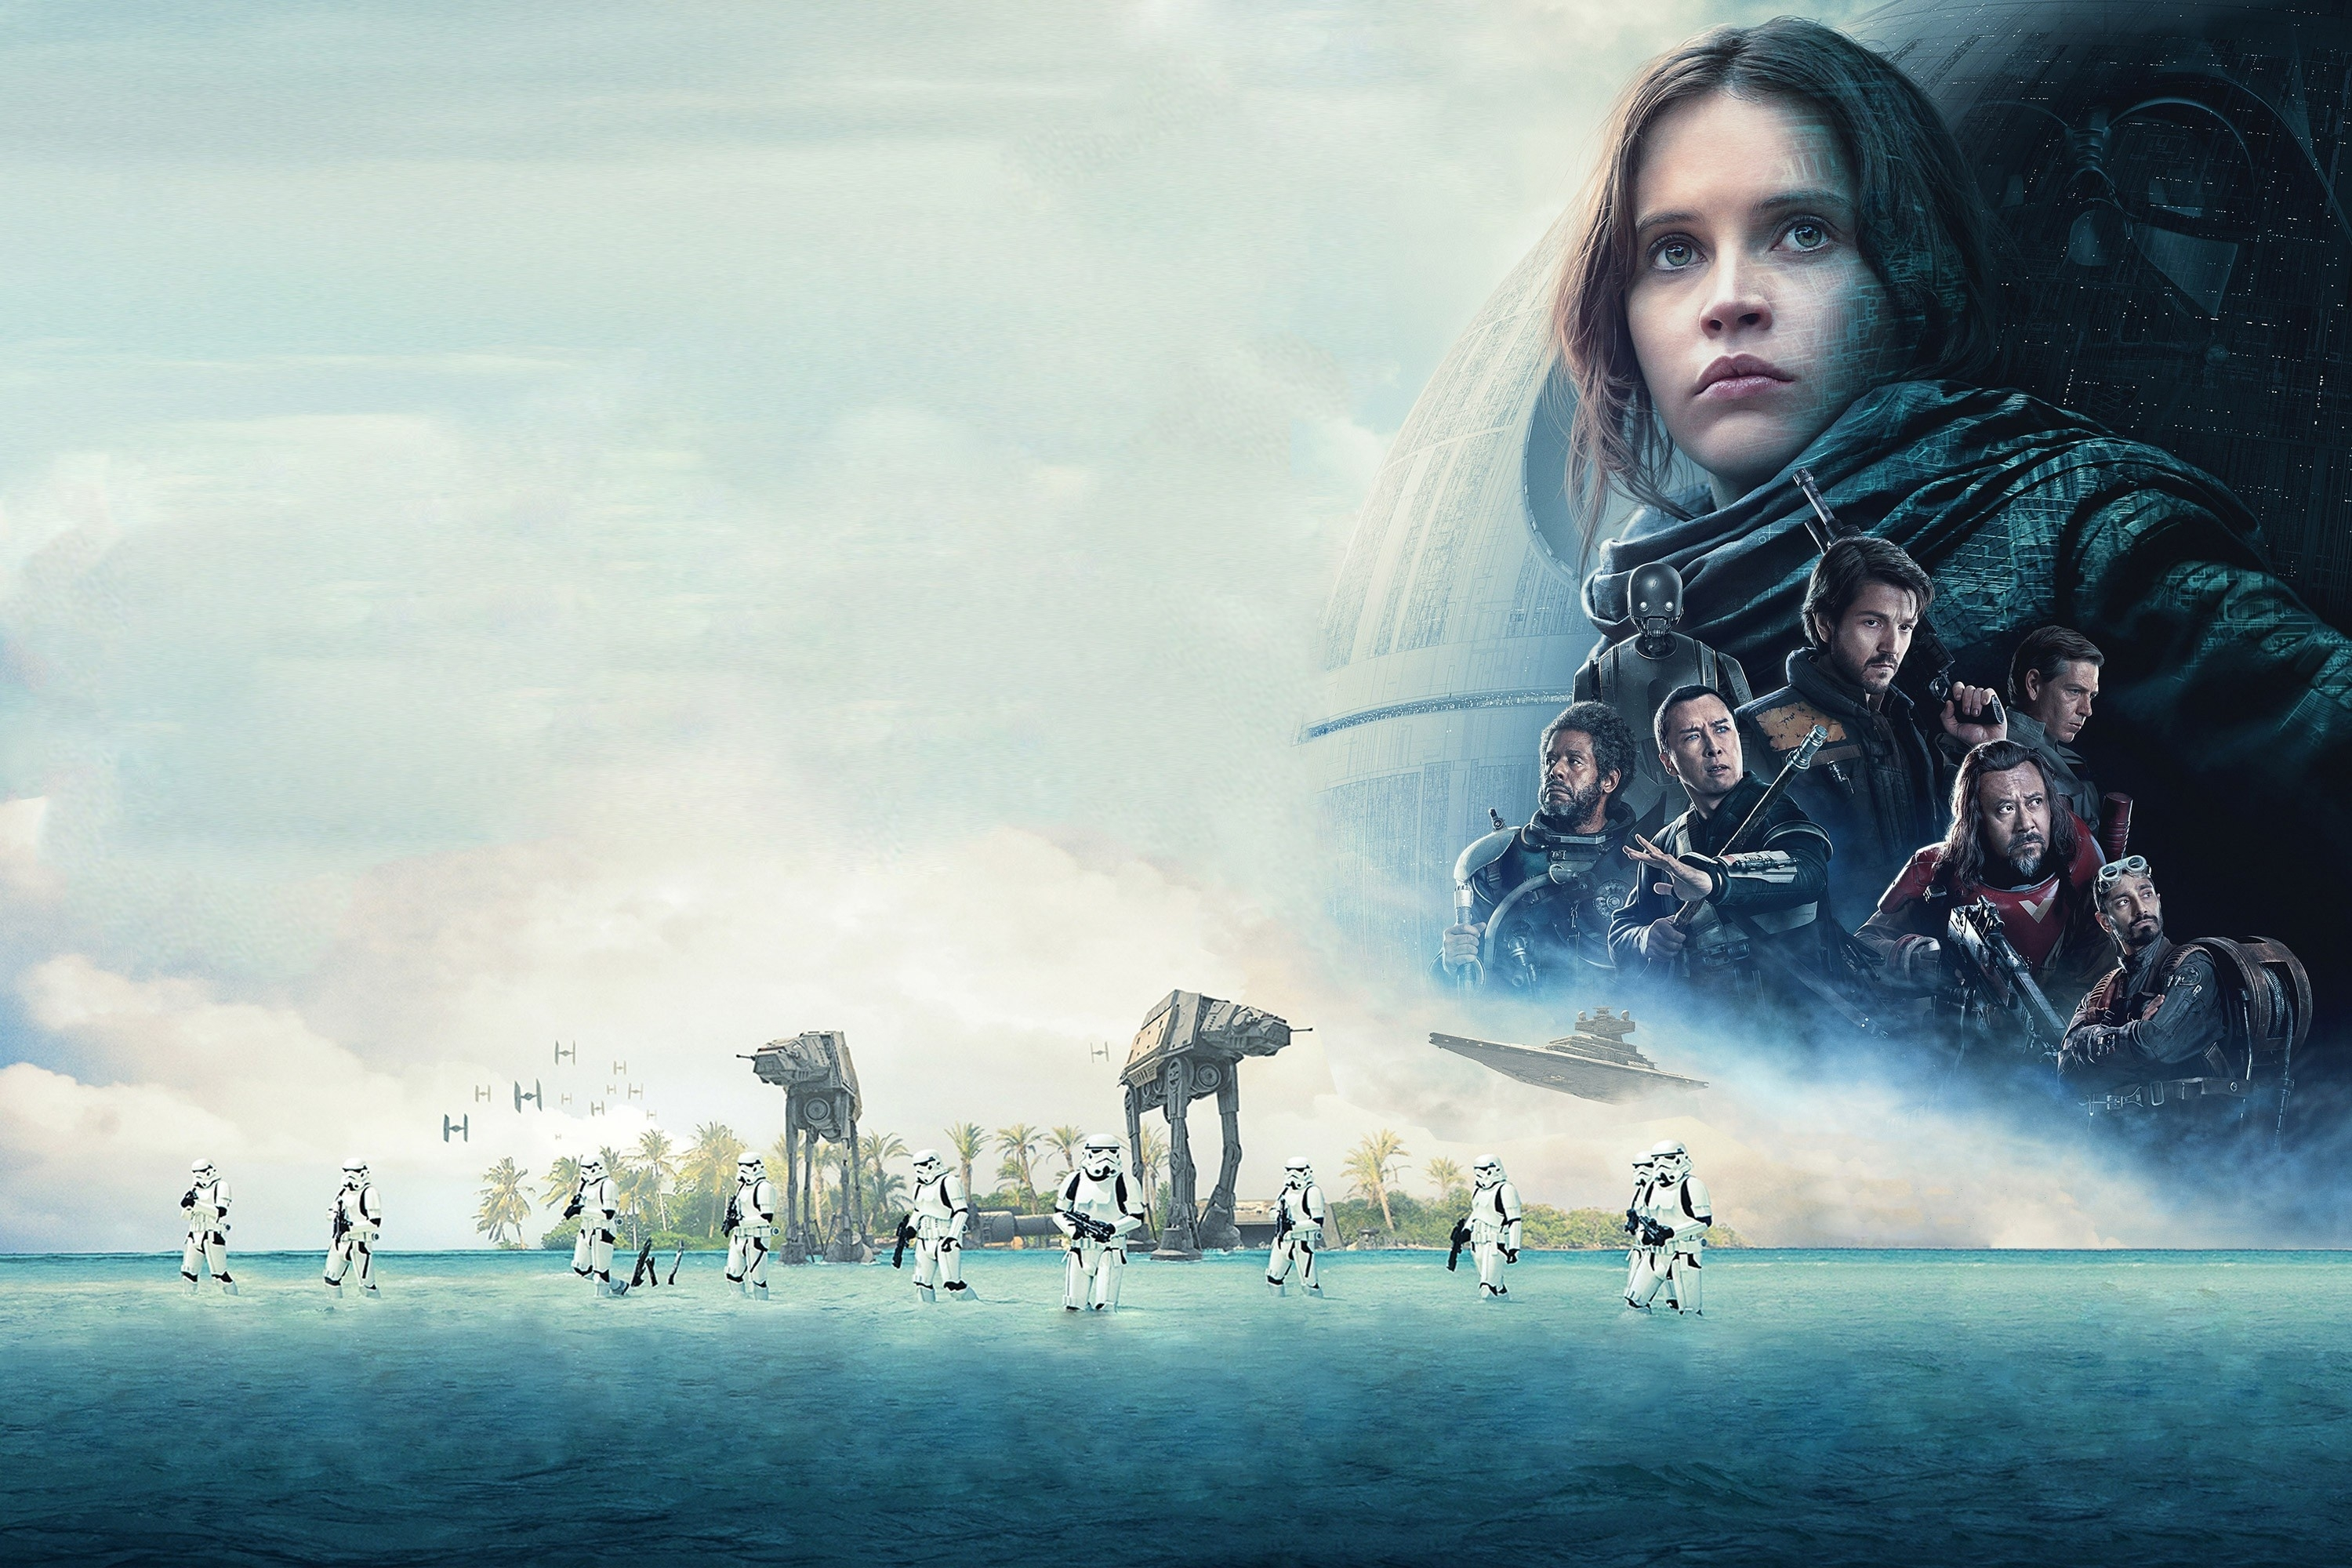 rogue one: a star wars story full hd fond d'écran and arrière-plan